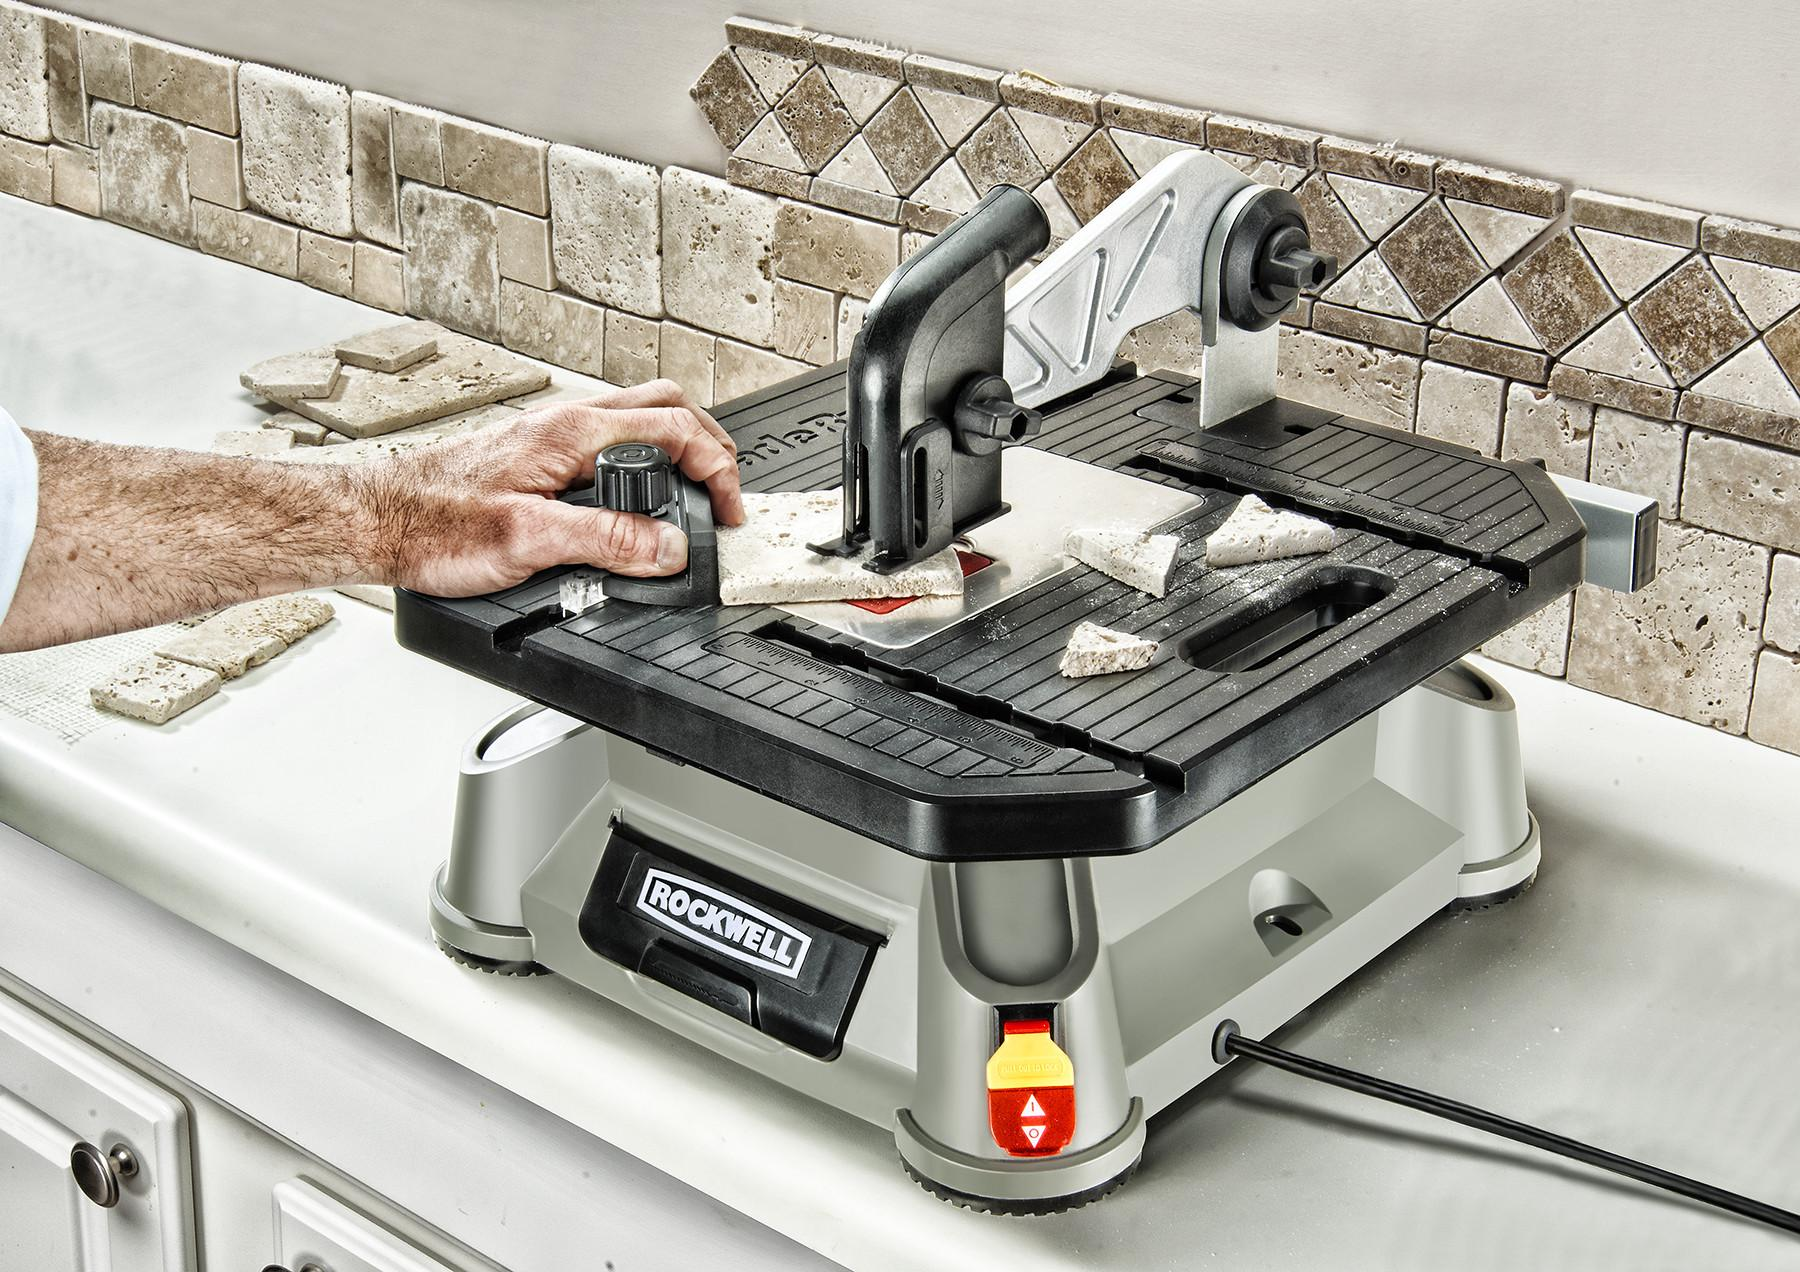 New Rockwell Bladerunner Ideal Benchtop Saw